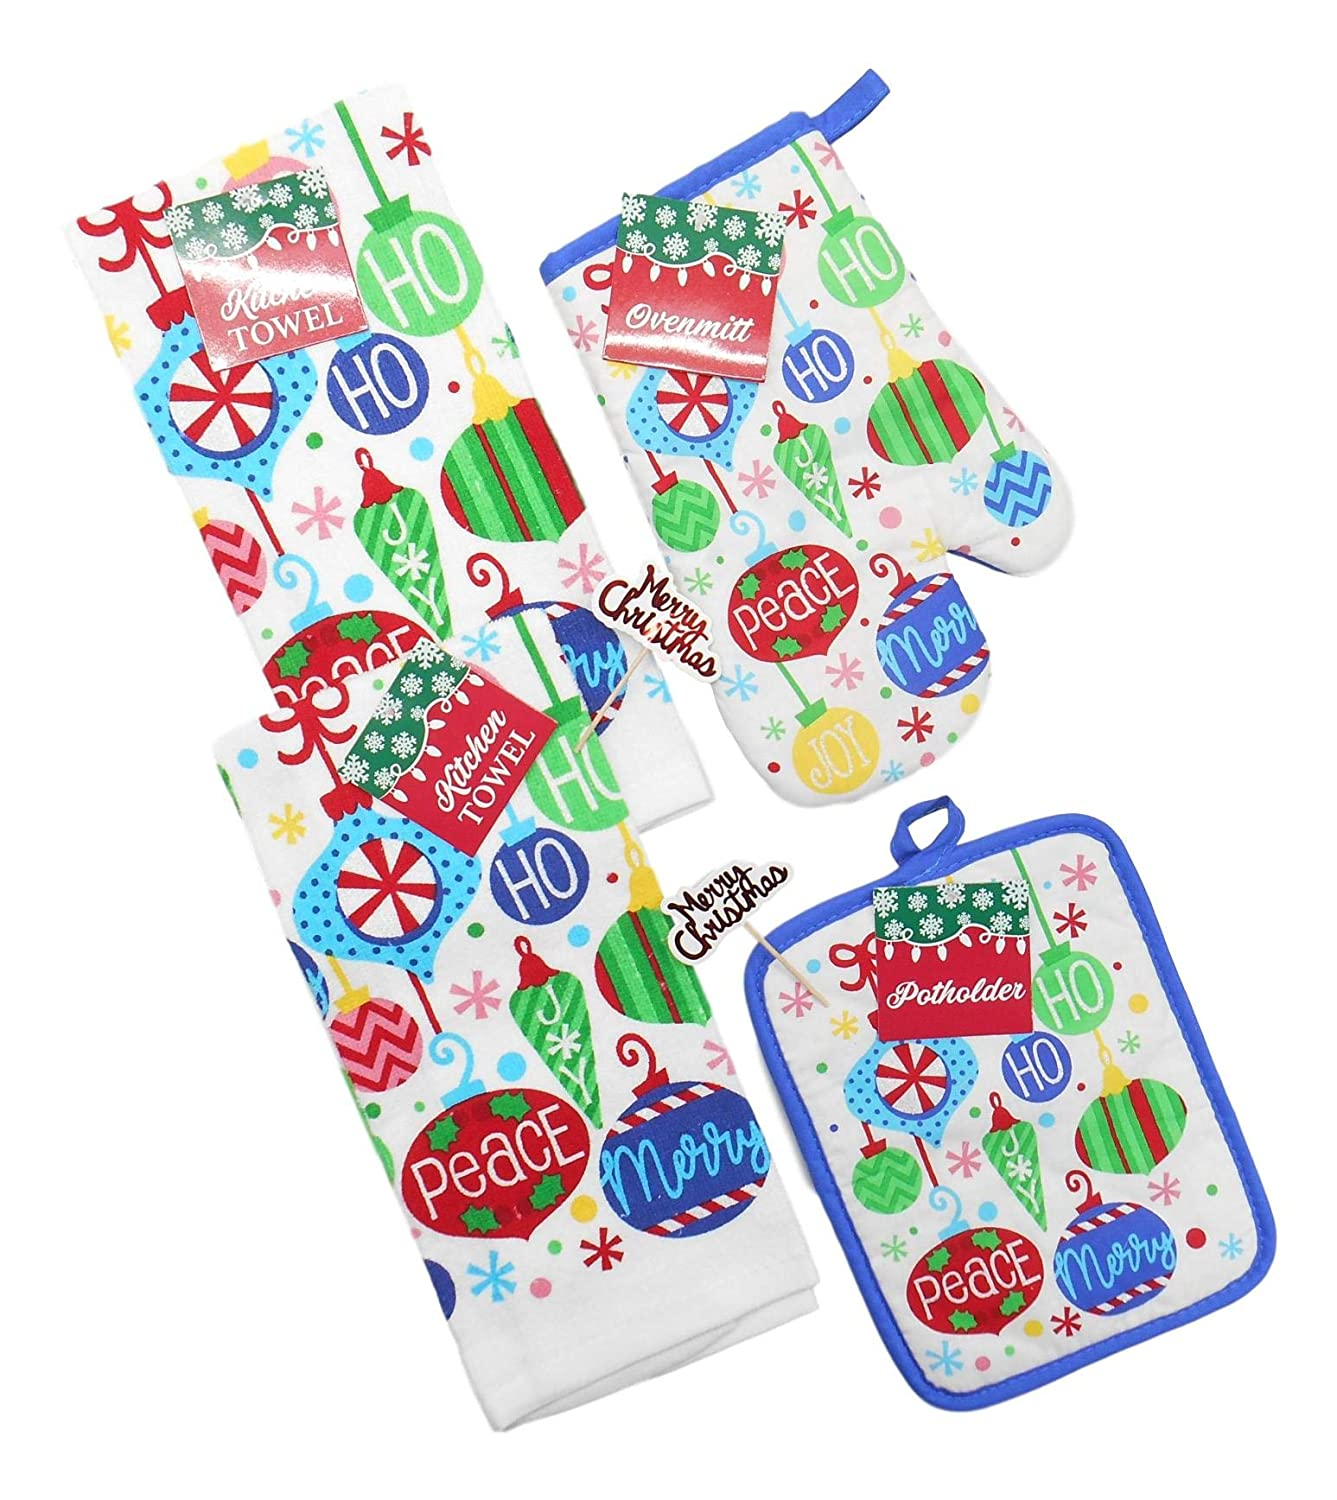 "Holiday Christmas Dish Towels Set Includes 2 Kitchen Towels, 1 Pot Holder, 1 Oven Mitt and 2"" Merry Christmas Picks (Festive Ornaments)"